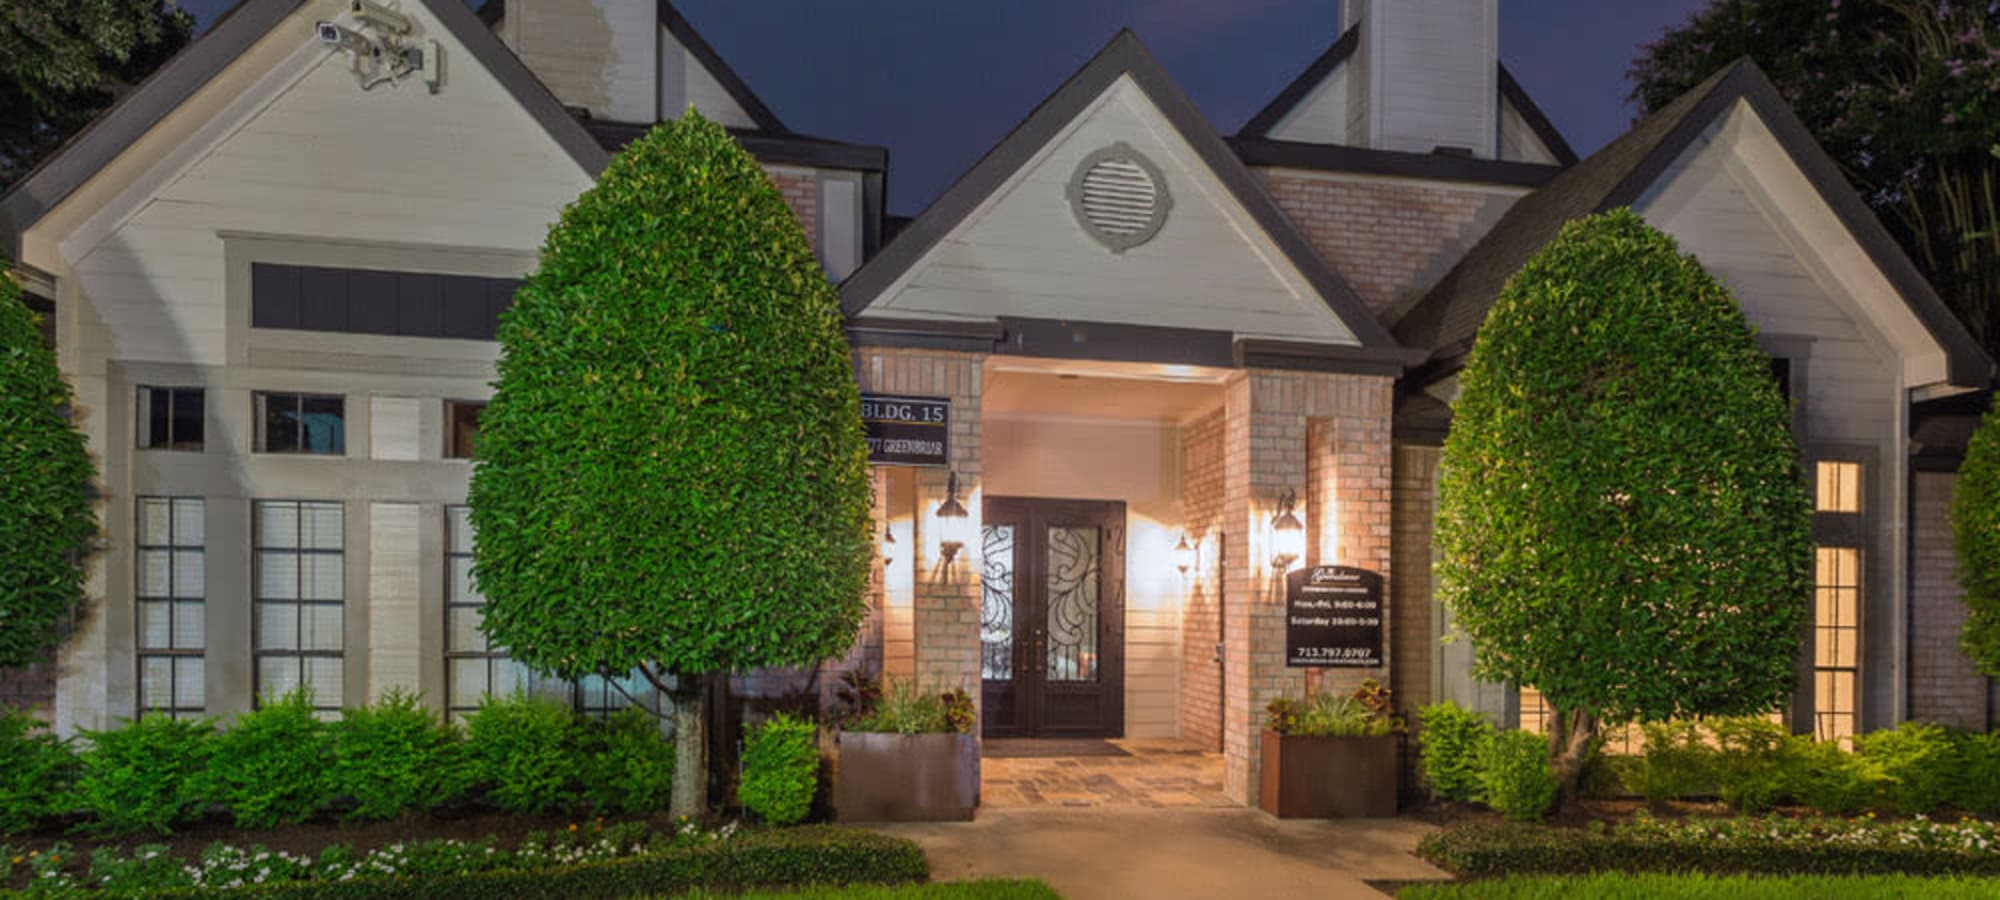 Apartments in Houston, Texas at Greenbriar Park